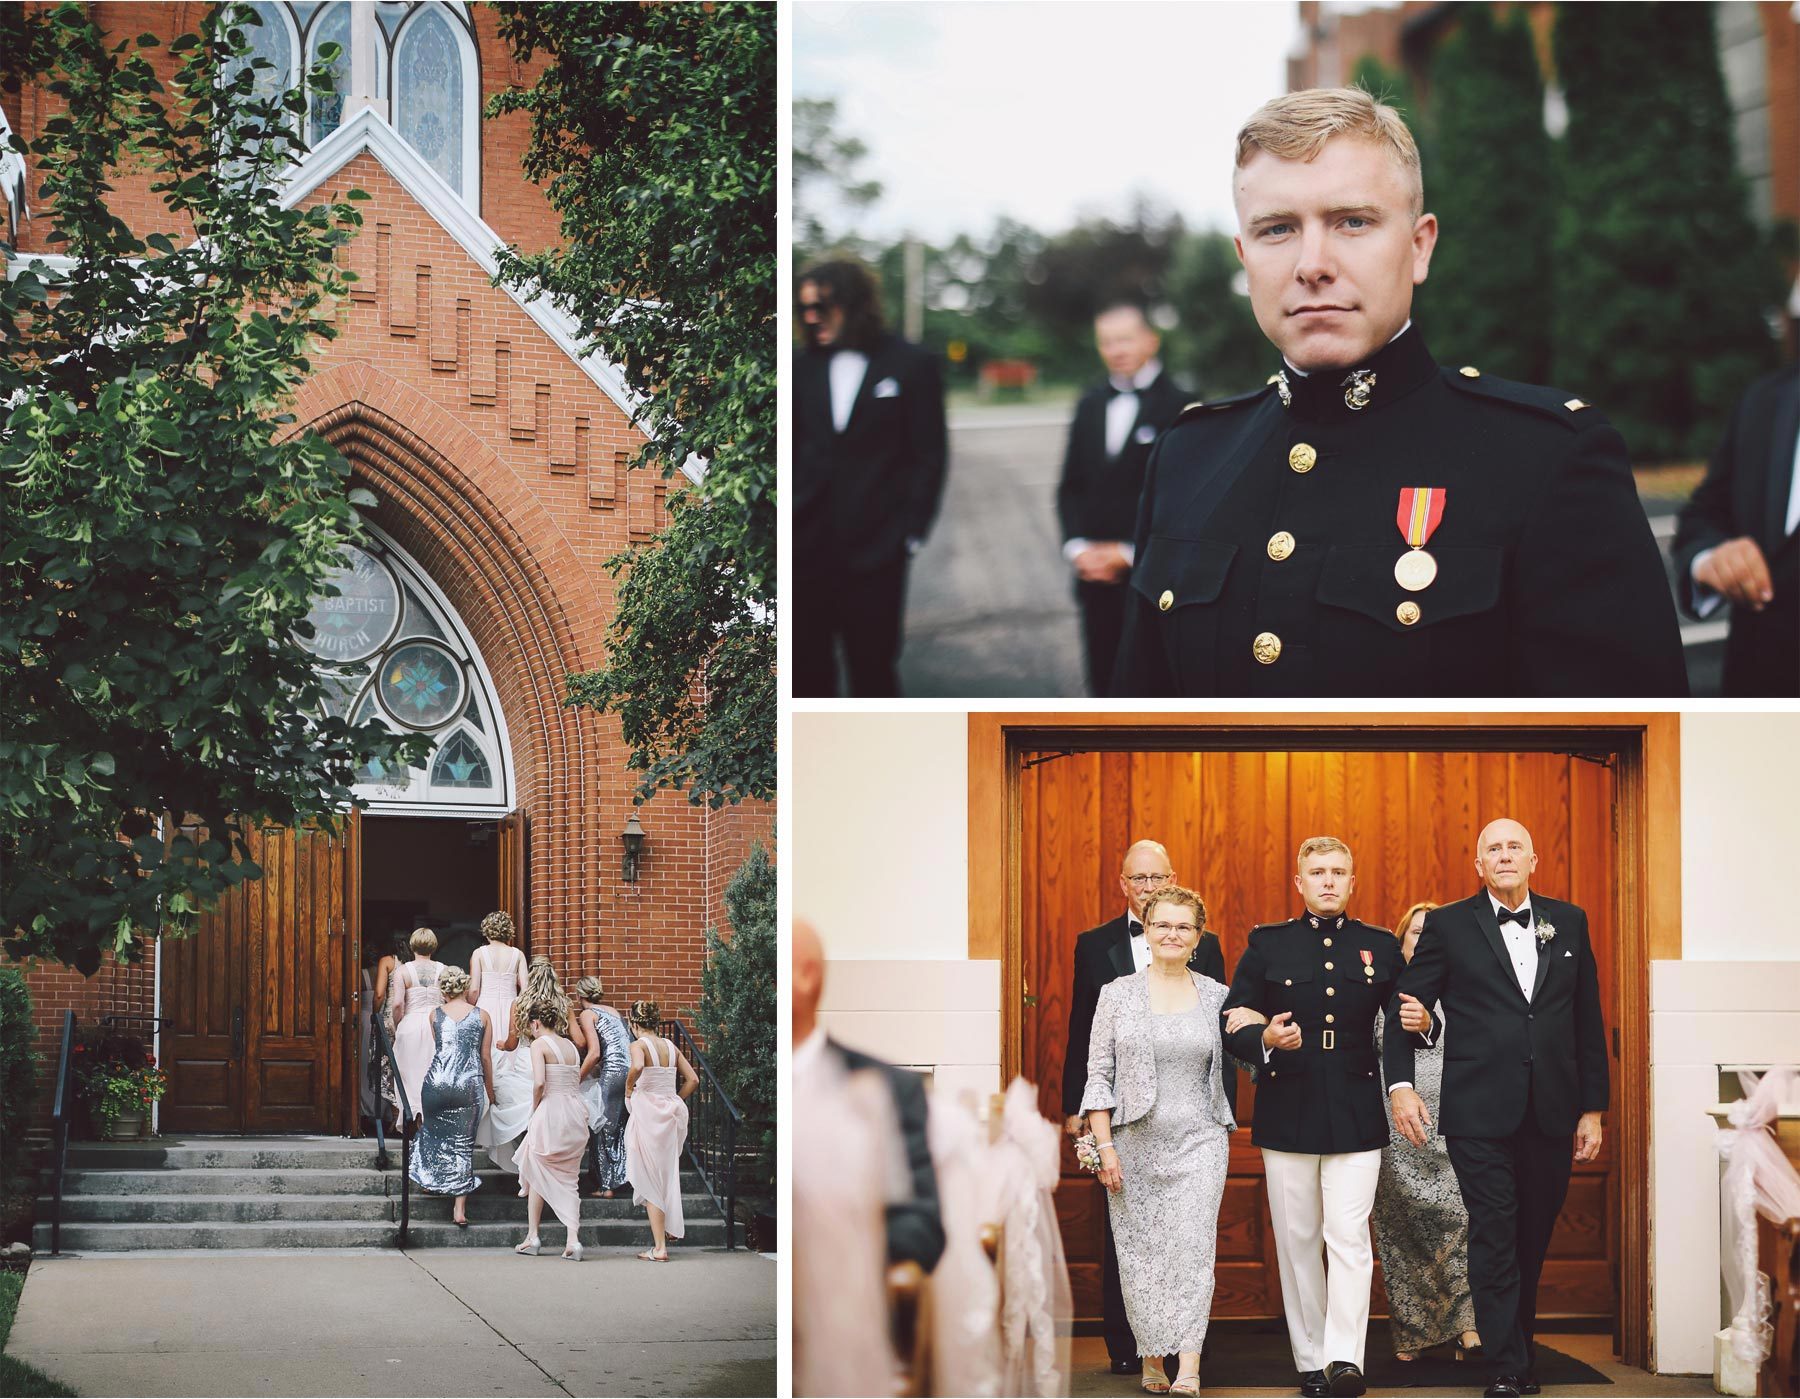 03-Minneapolis-Minnesota-Wedding-Photography-by-Vick-Photography-St.-John-the-Baptist-Church-Ceremony-Elizabeth-and-William.jpg